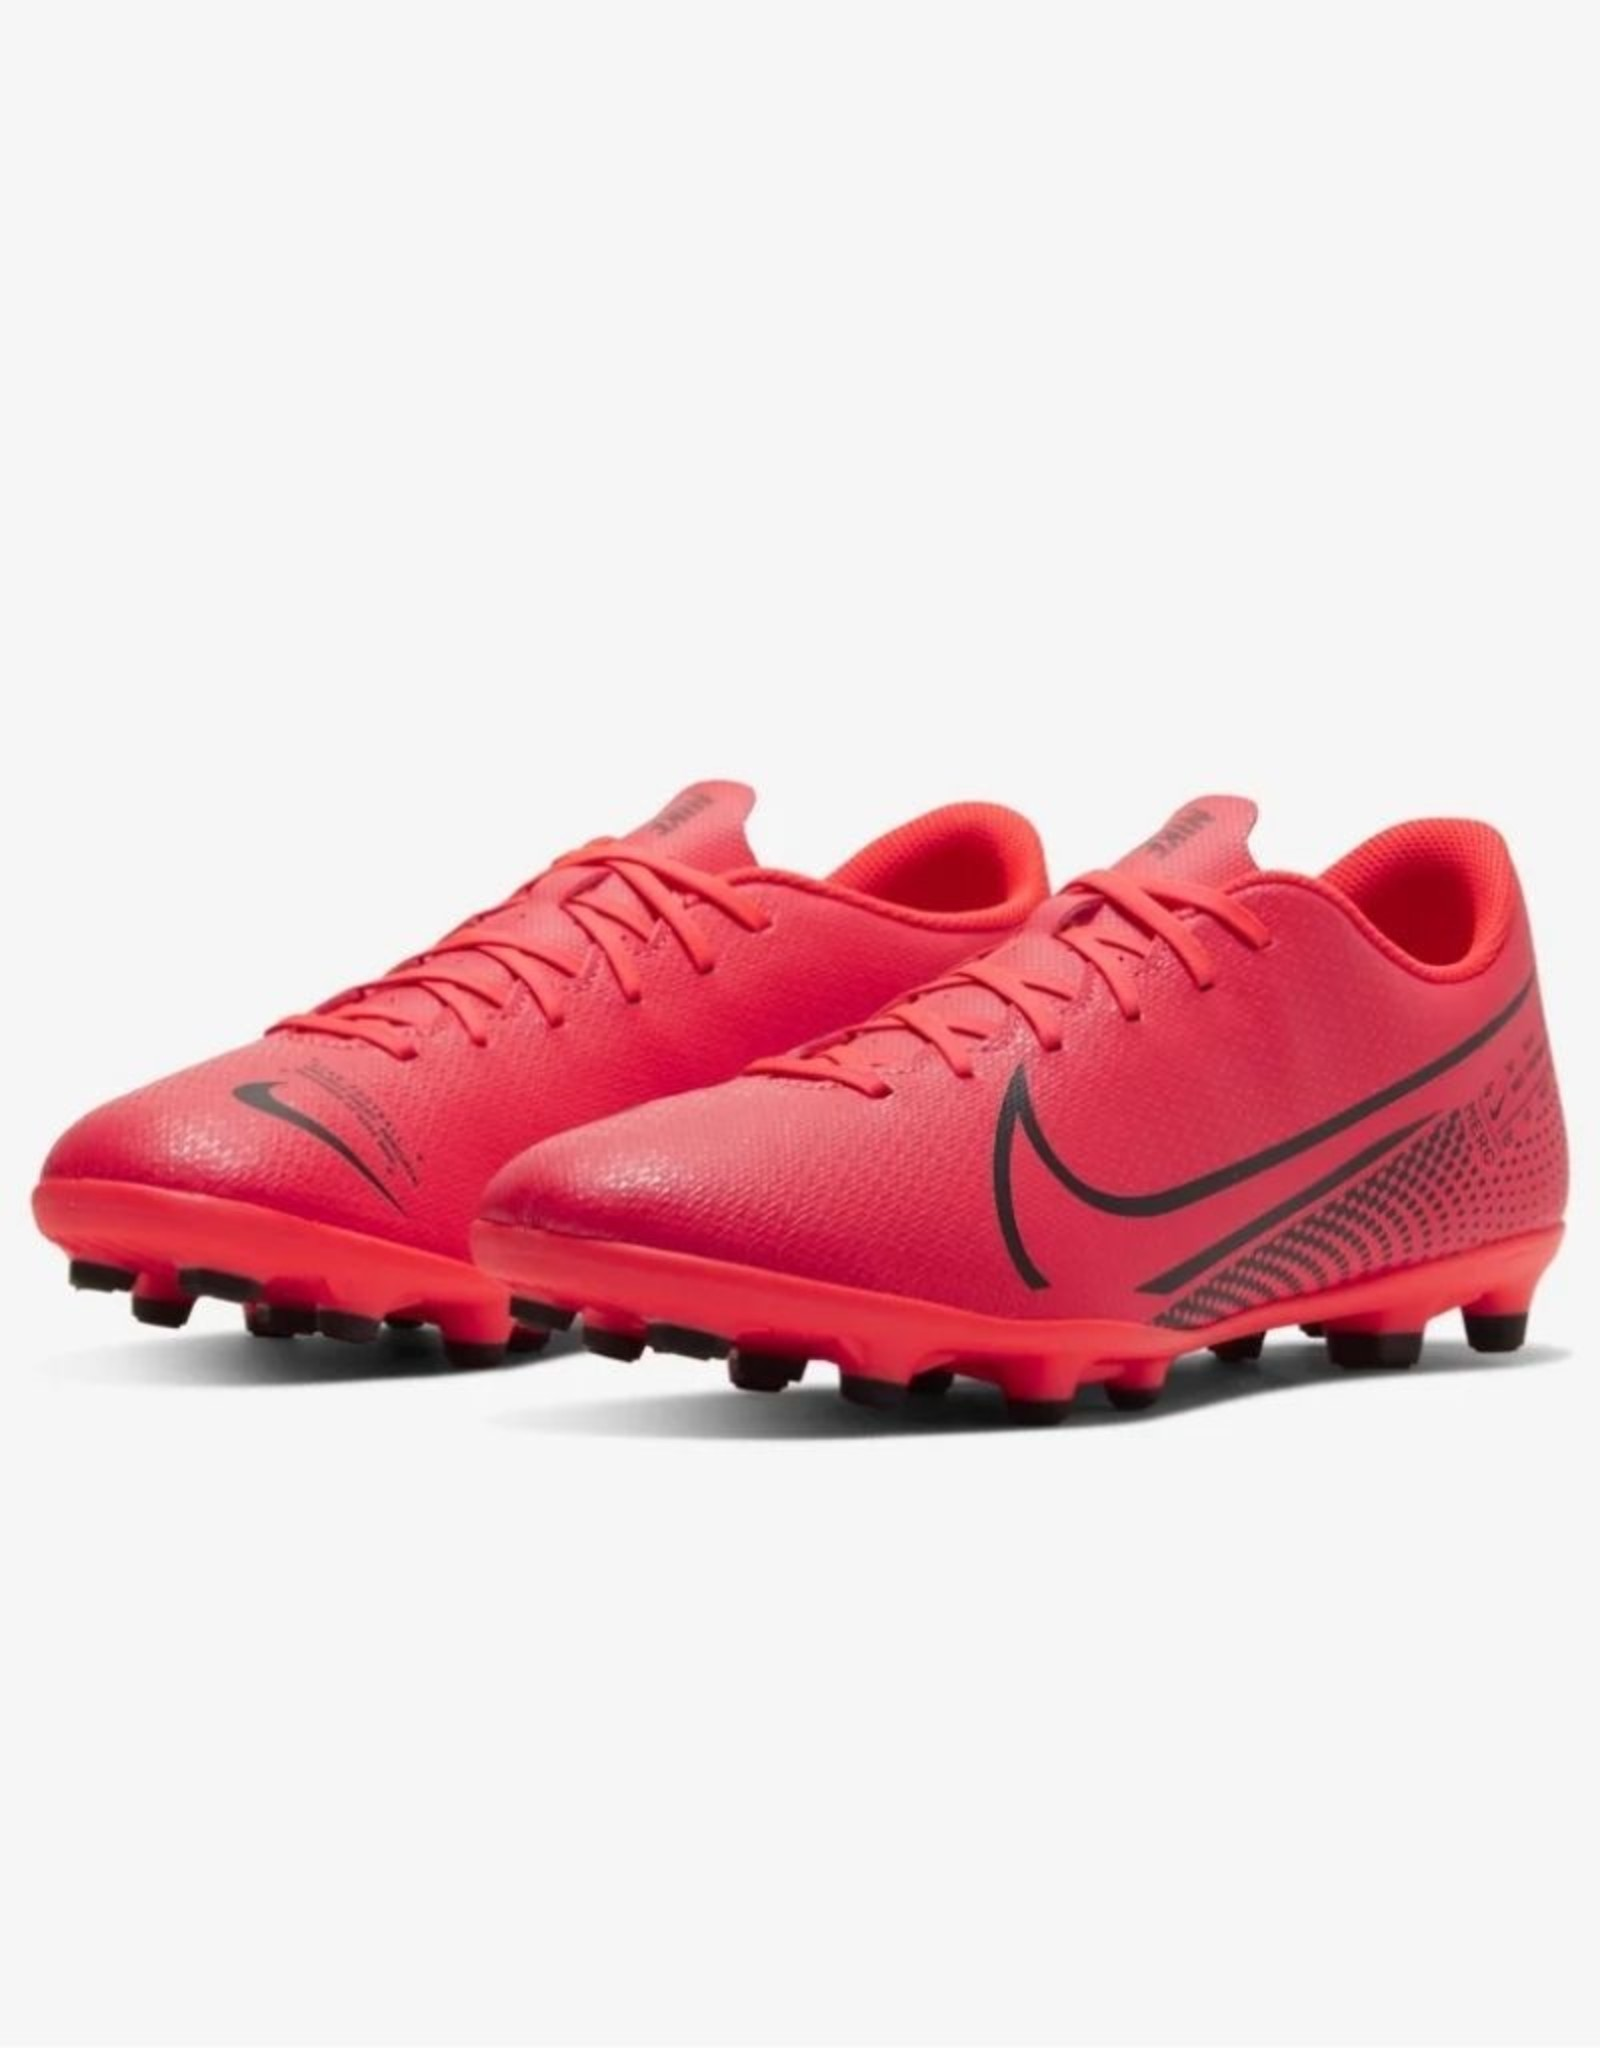 Nike Mercurial Vapor 13 Club MG Soccer Cleat Laser Crimson